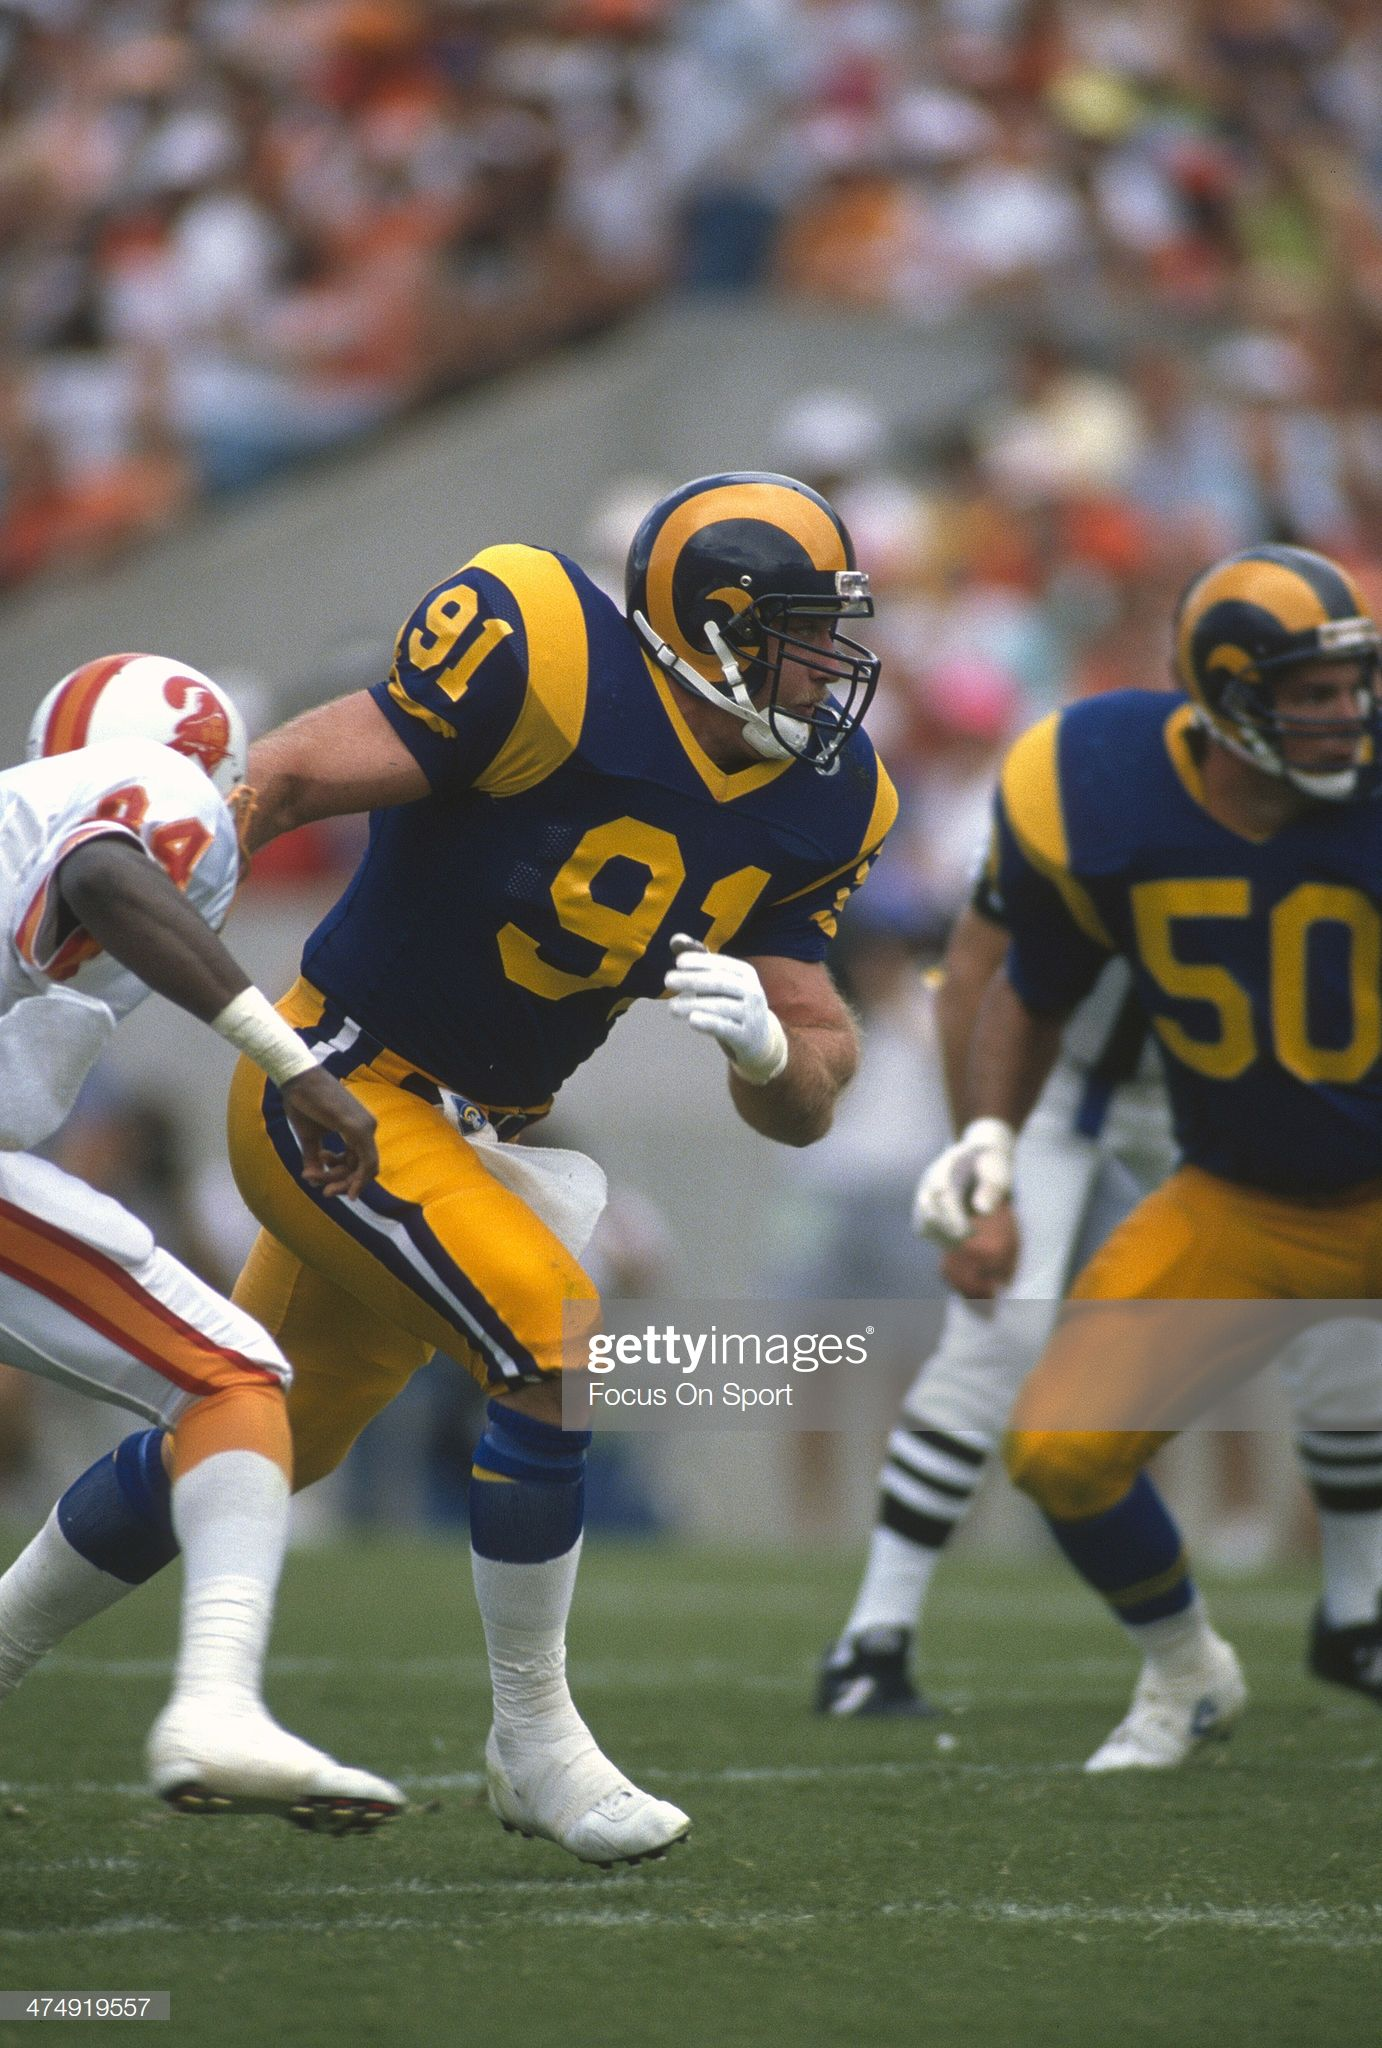 Kevin Greene Rams (With images) Nfl players, American